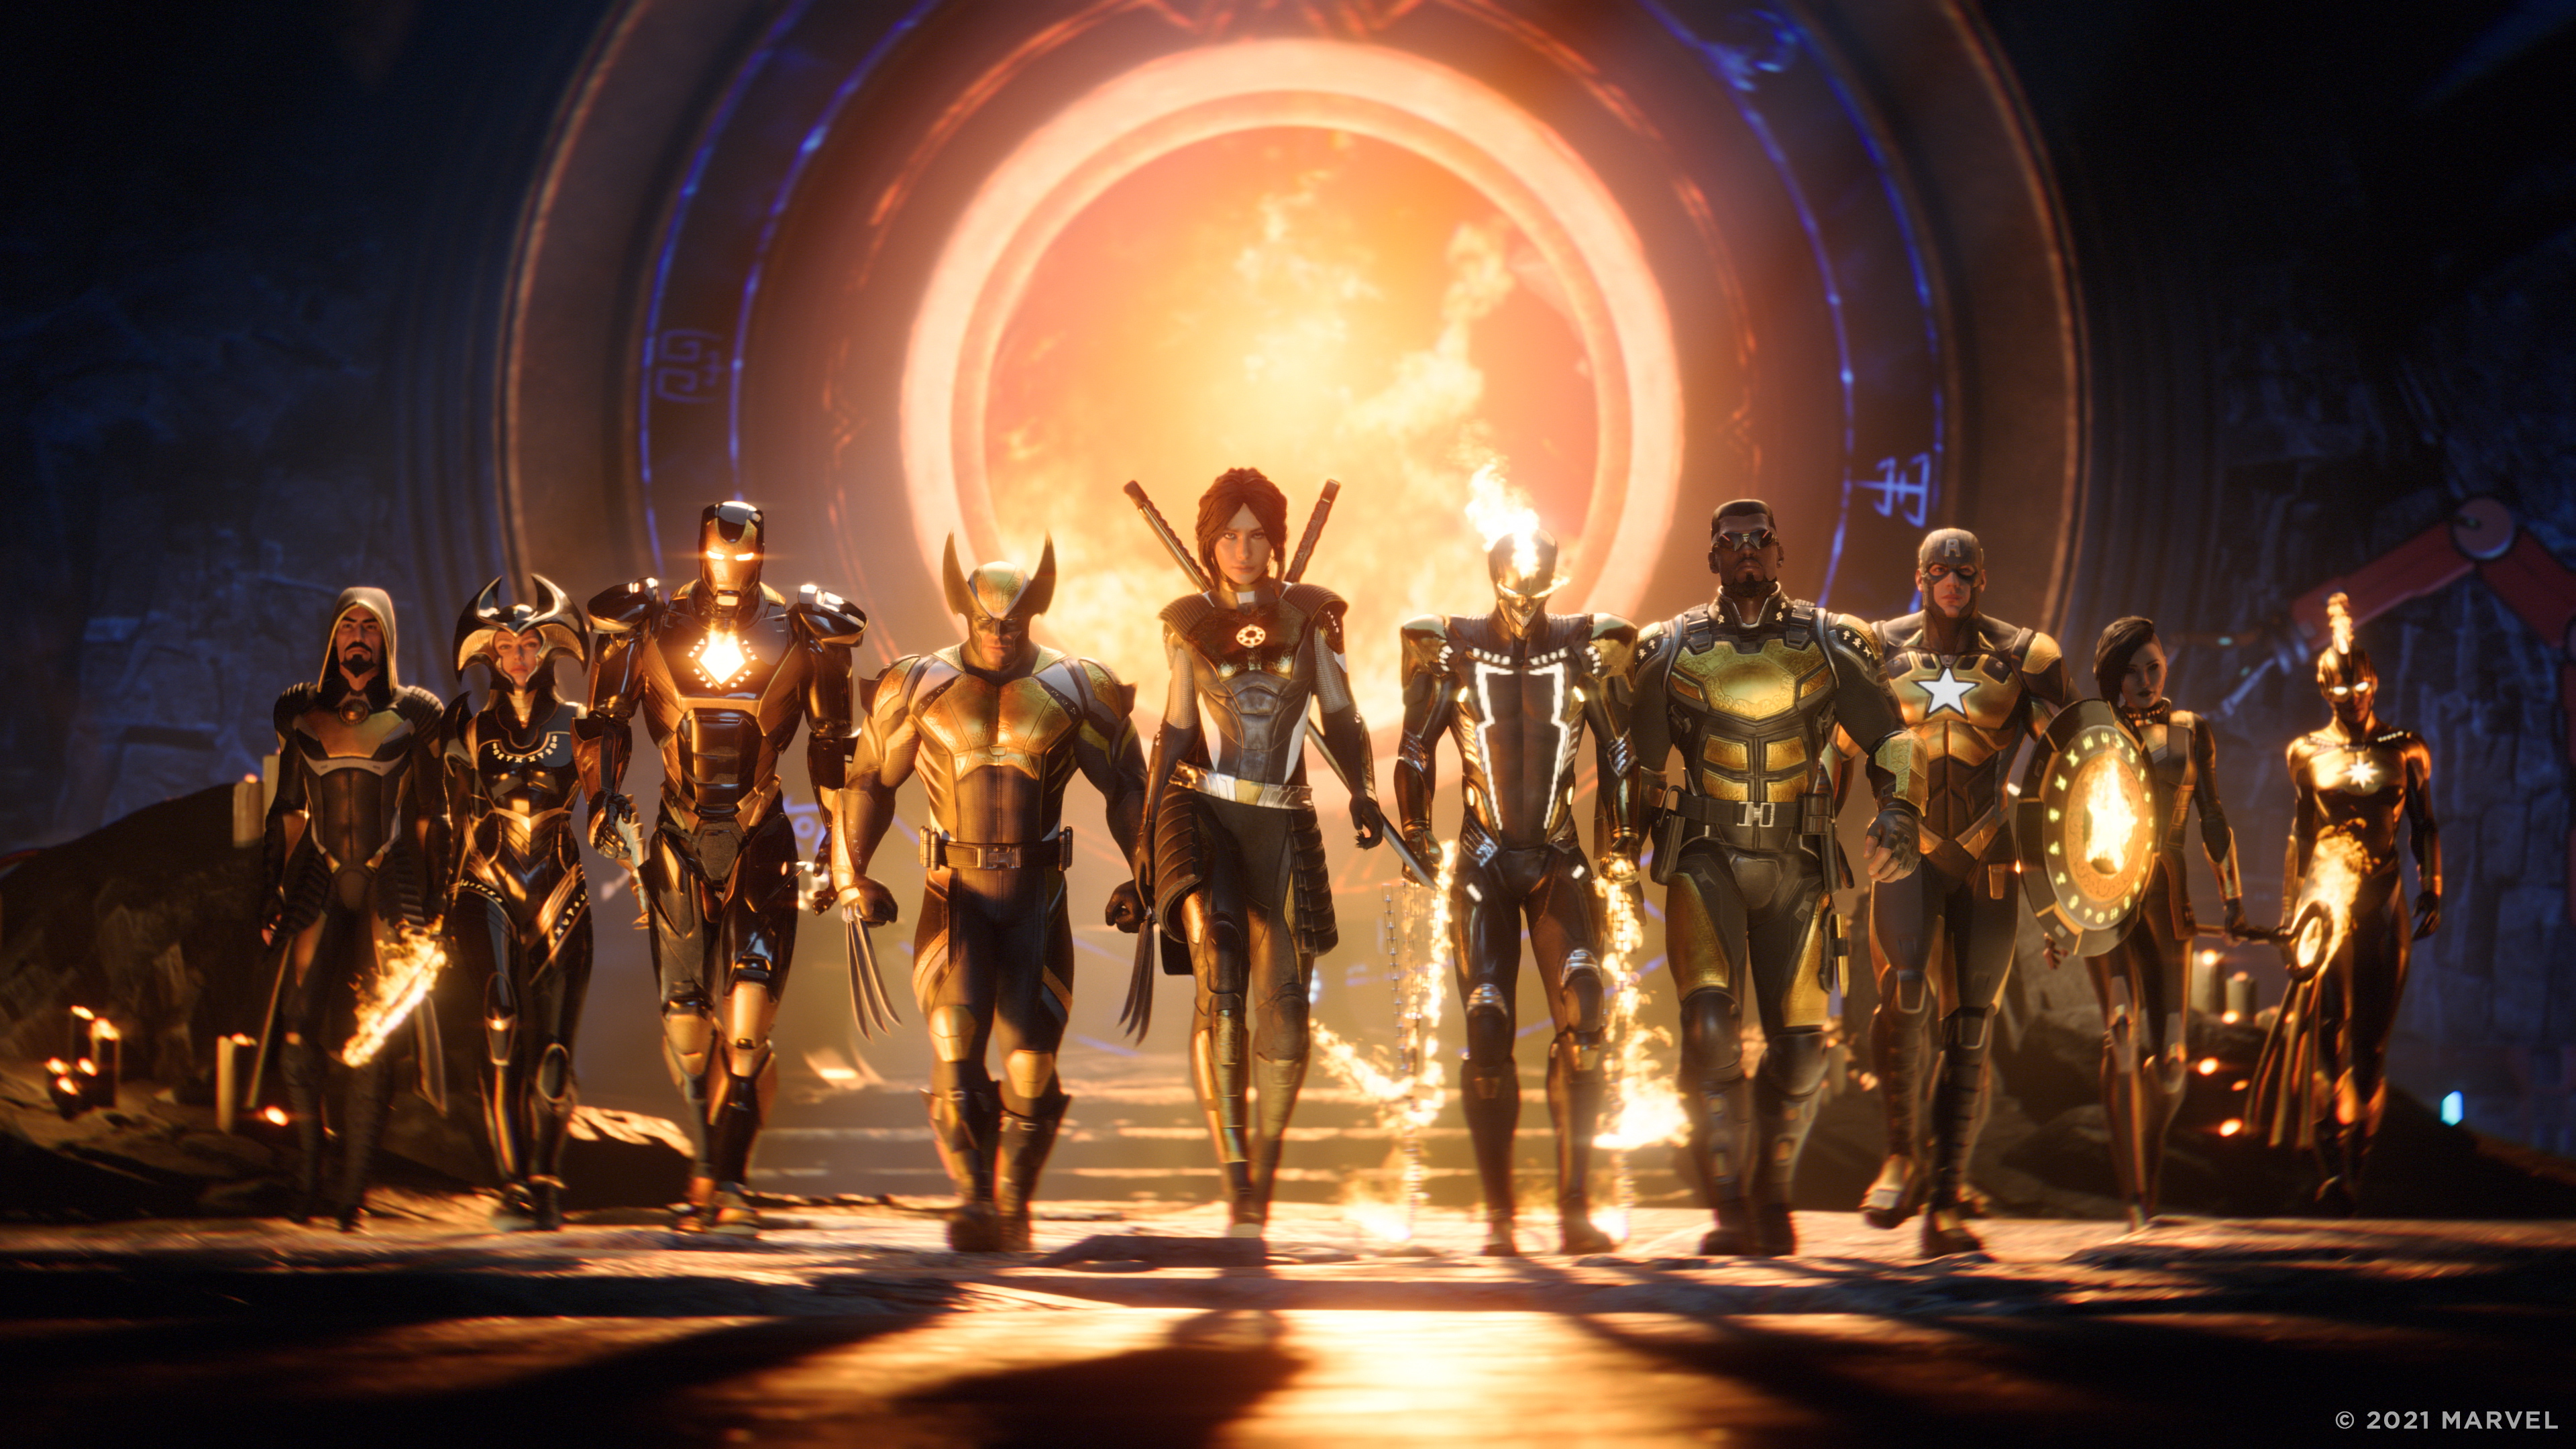 The Hunter, flanked by Wolvering, Iron Man, Blade and others, strides into the frame. Behind them, what looks like a kind of stargate.